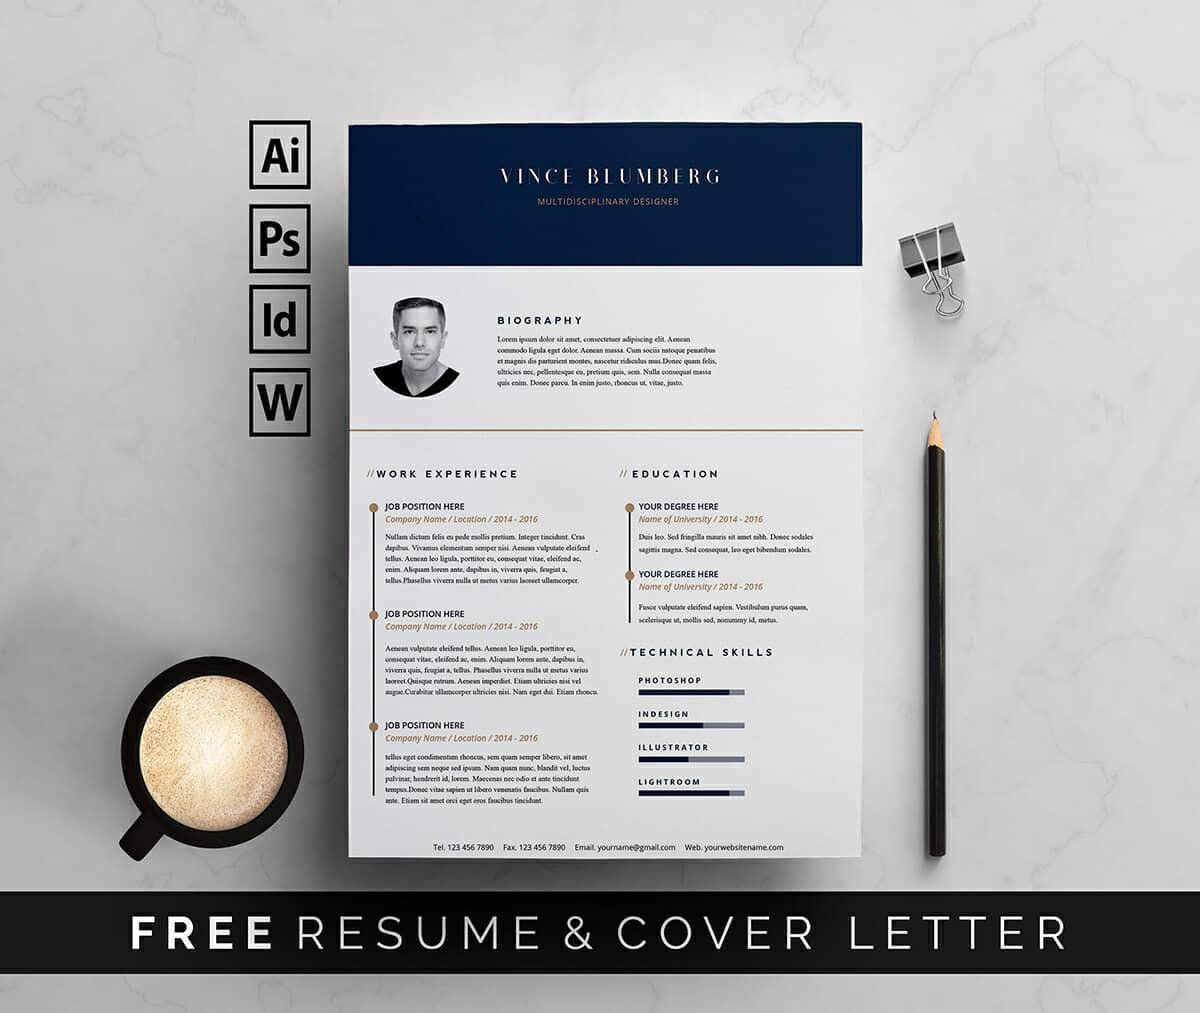 008 Breathtaking Resume Template M Word Free Idea  Modern Microsoft Download 2010 Cv With PictureFull